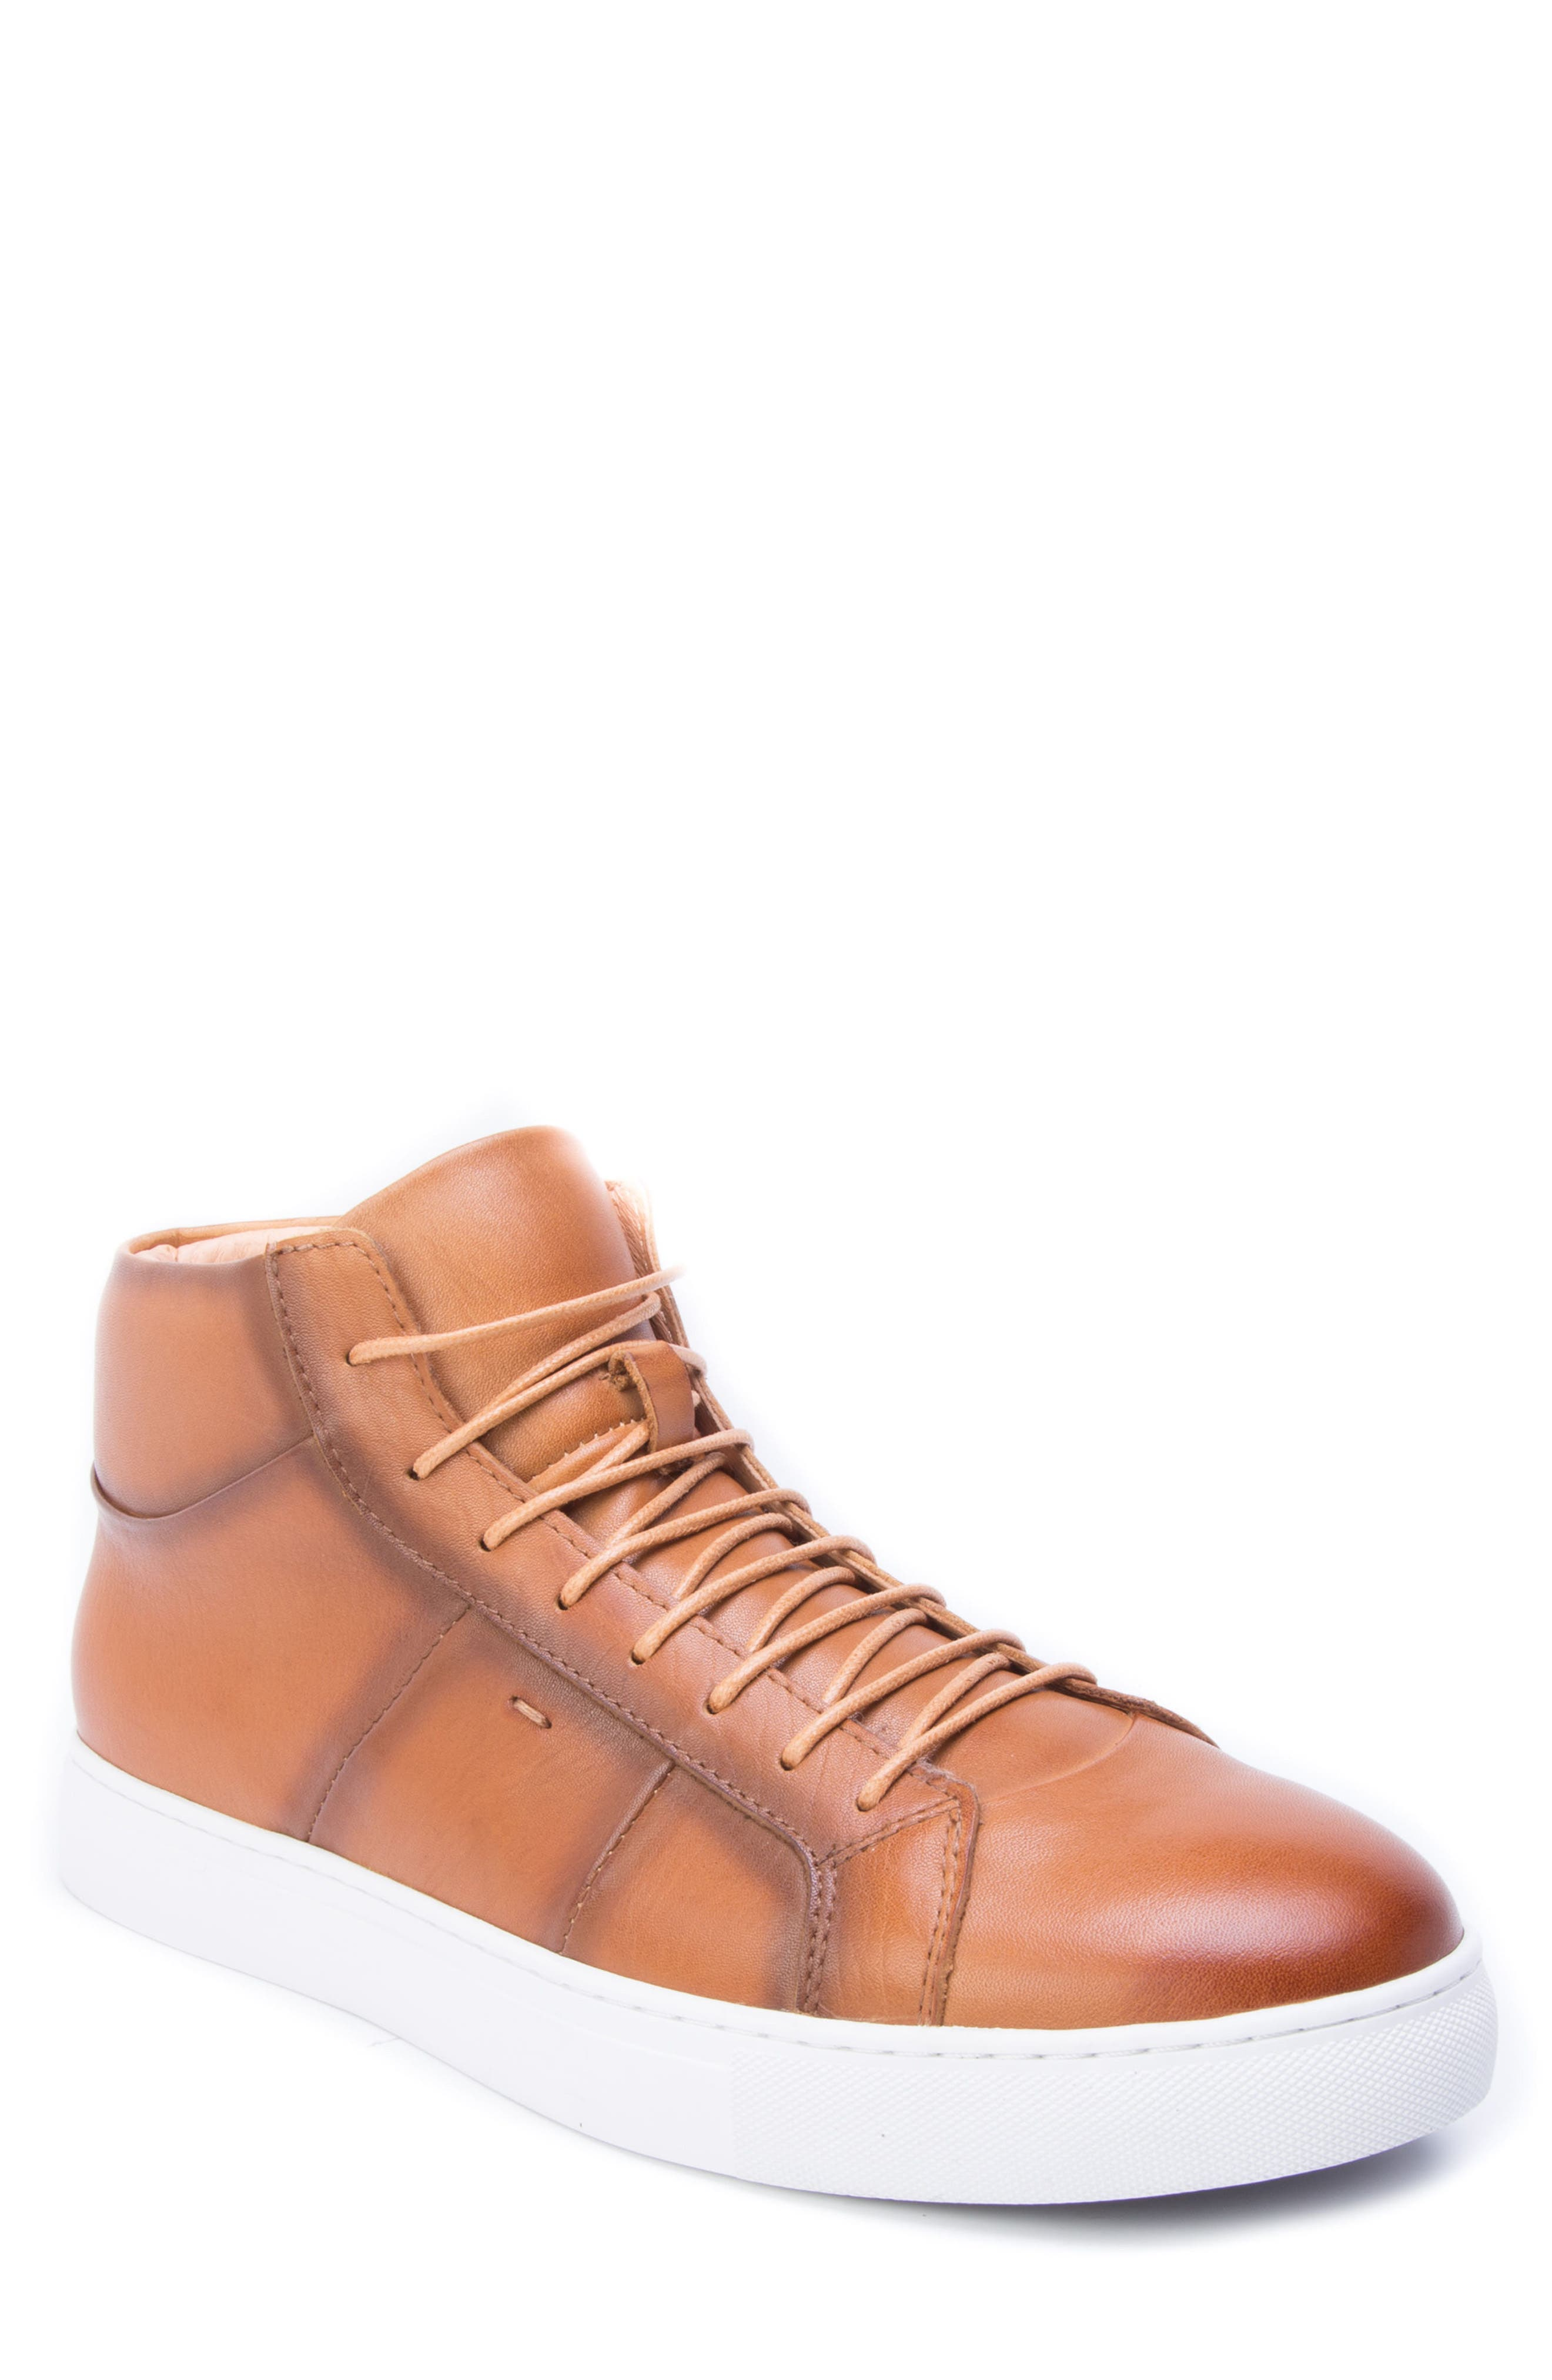 Phaser High Top Sneaker,                             Main thumbnail 1, color,                             Cognac Leather